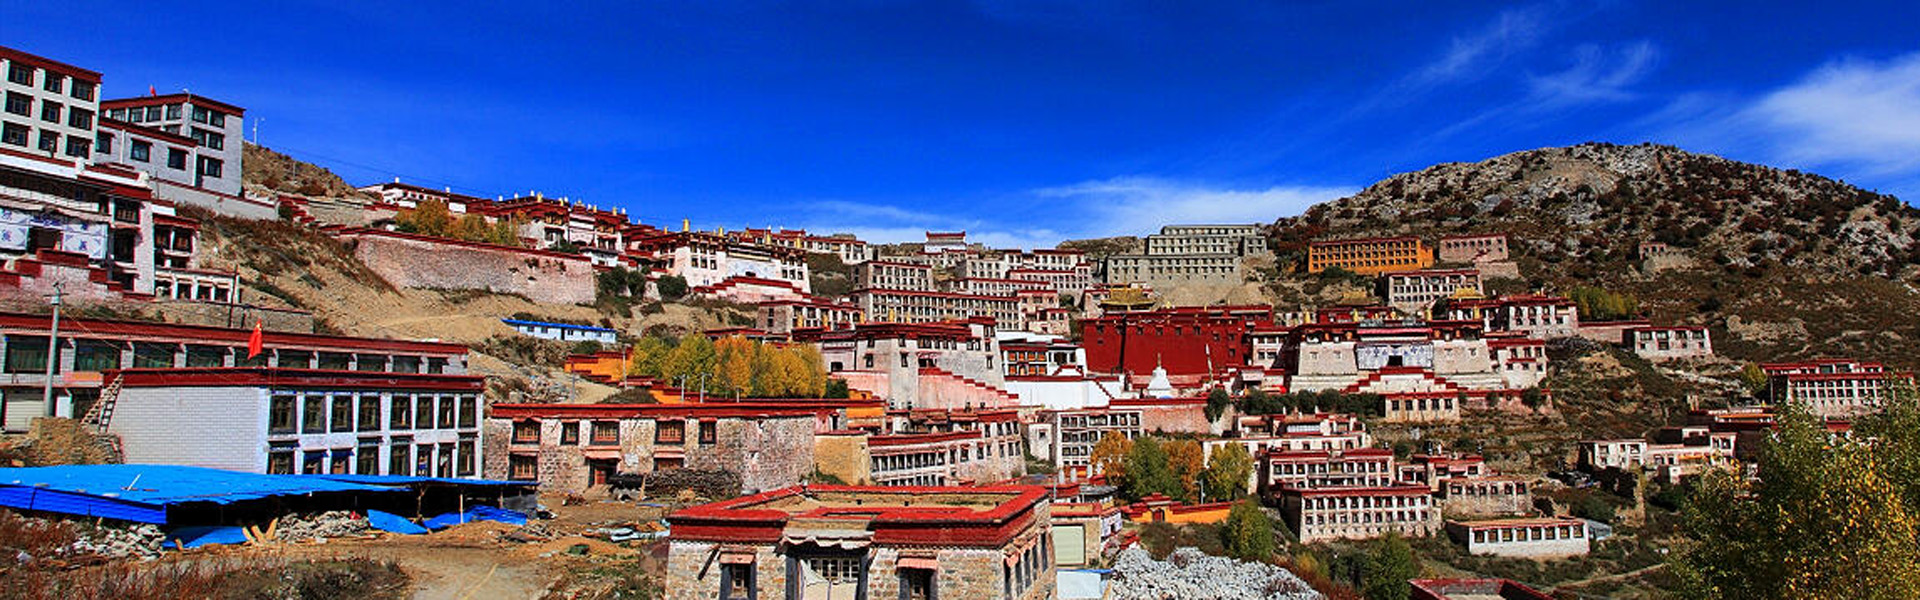 Military Museum of the Chinese People's Revolutions Beijing, Ganden Monastery Lhasa - Transportation, Highlights, History & Tips